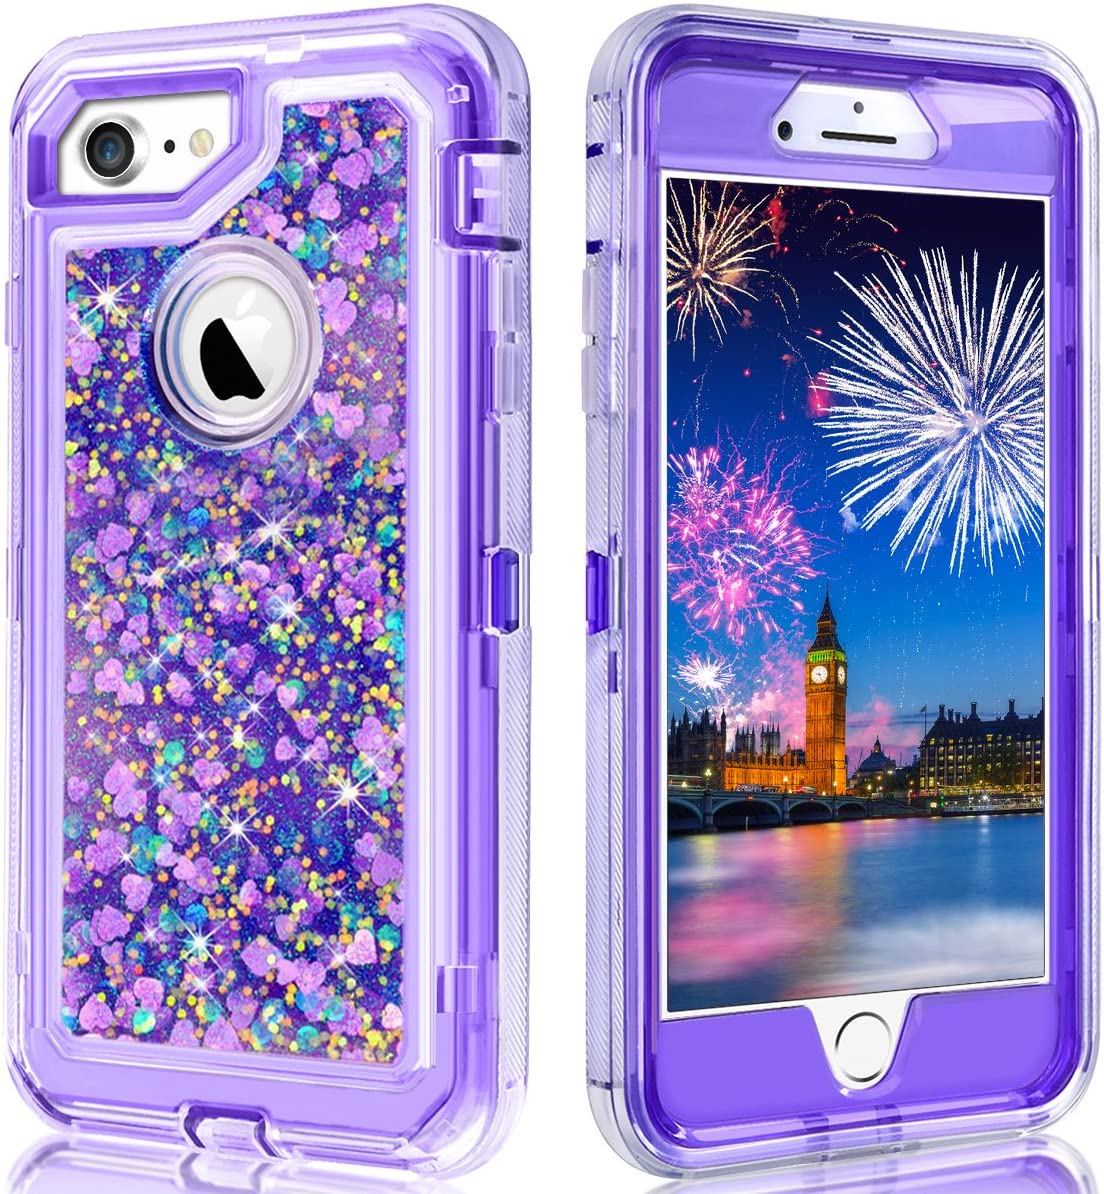 WOLLONY for iPhone SE2 Case,iPhone 6 Case,iPhone 7 Case,Full Body Shockproof Liquid Glitter Quicksand Bling Heavy Duty Hard Bumper Non-Slip Soft Transparent Protective for iPhone SE2 8 7 6 Purple